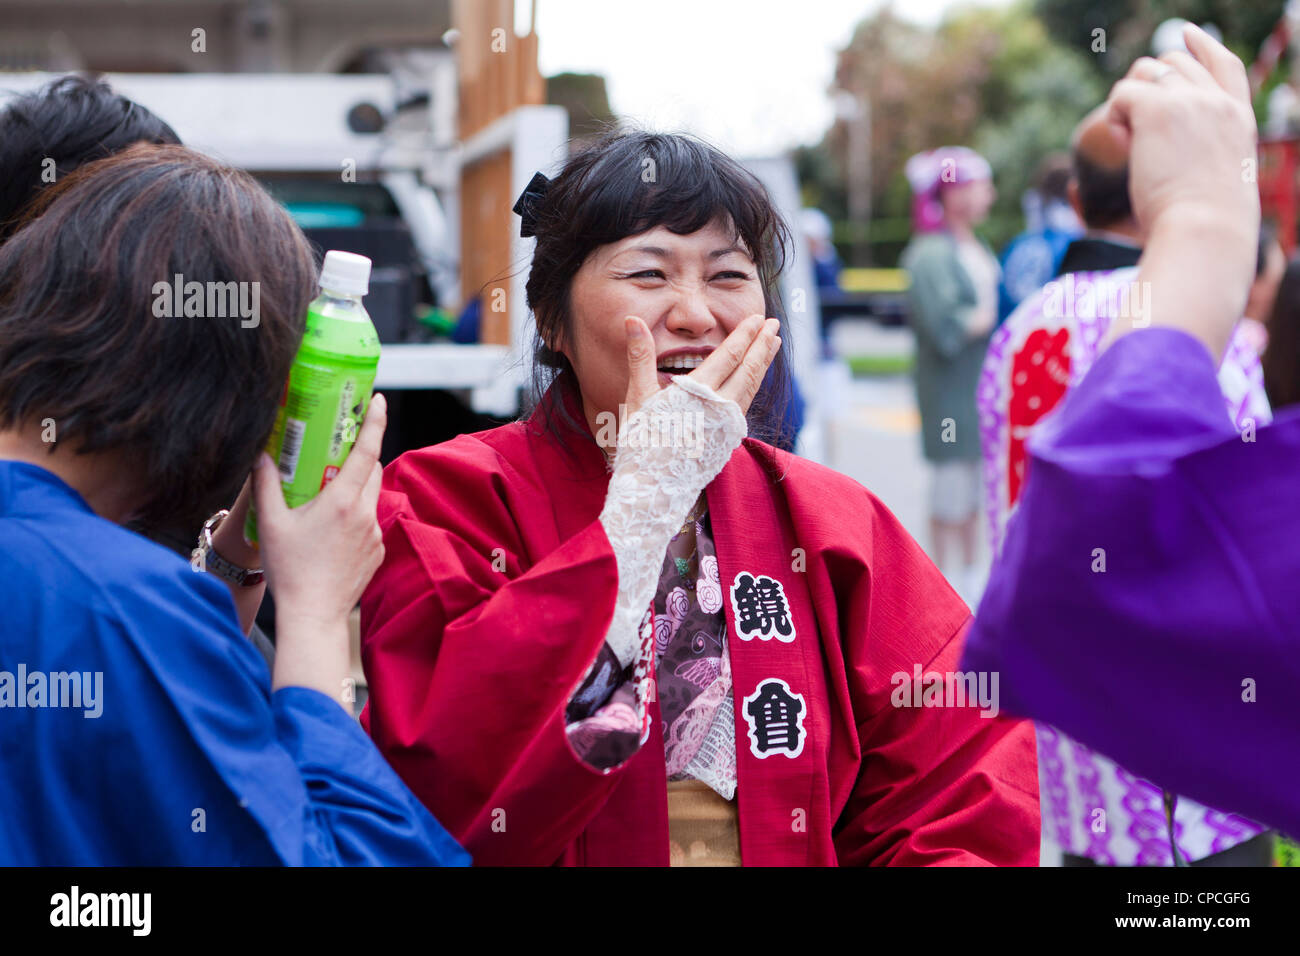 A Japanese woman covering her mouth while laughing - Stock Image